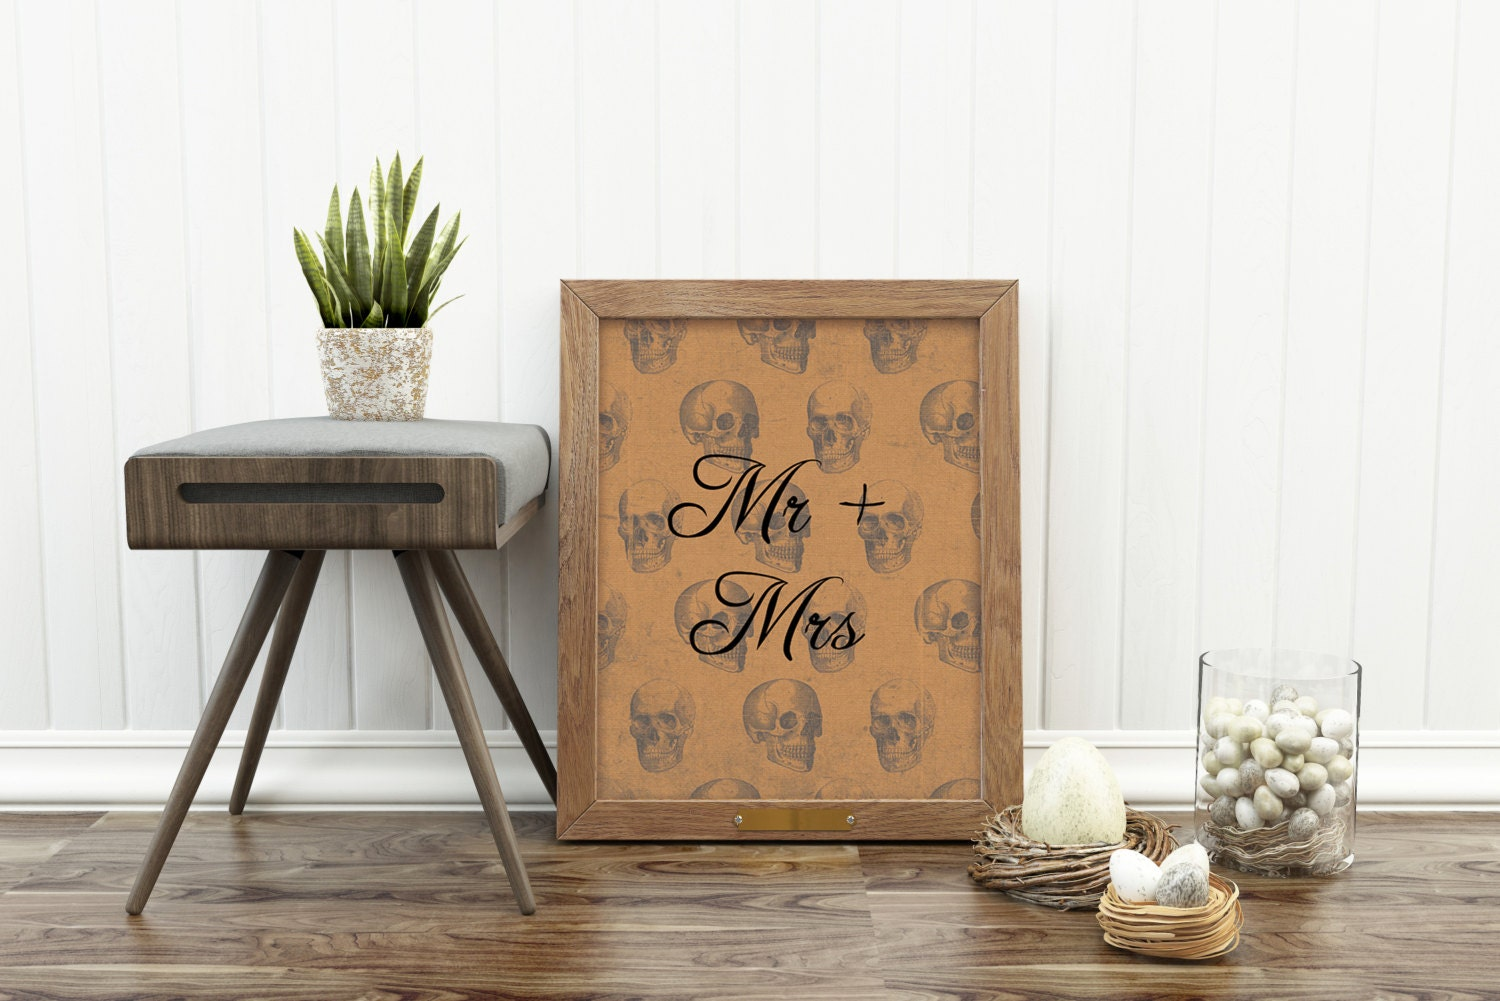 Mr and Mrs Print Alternative Wedding gift by HangingMonkeyArts